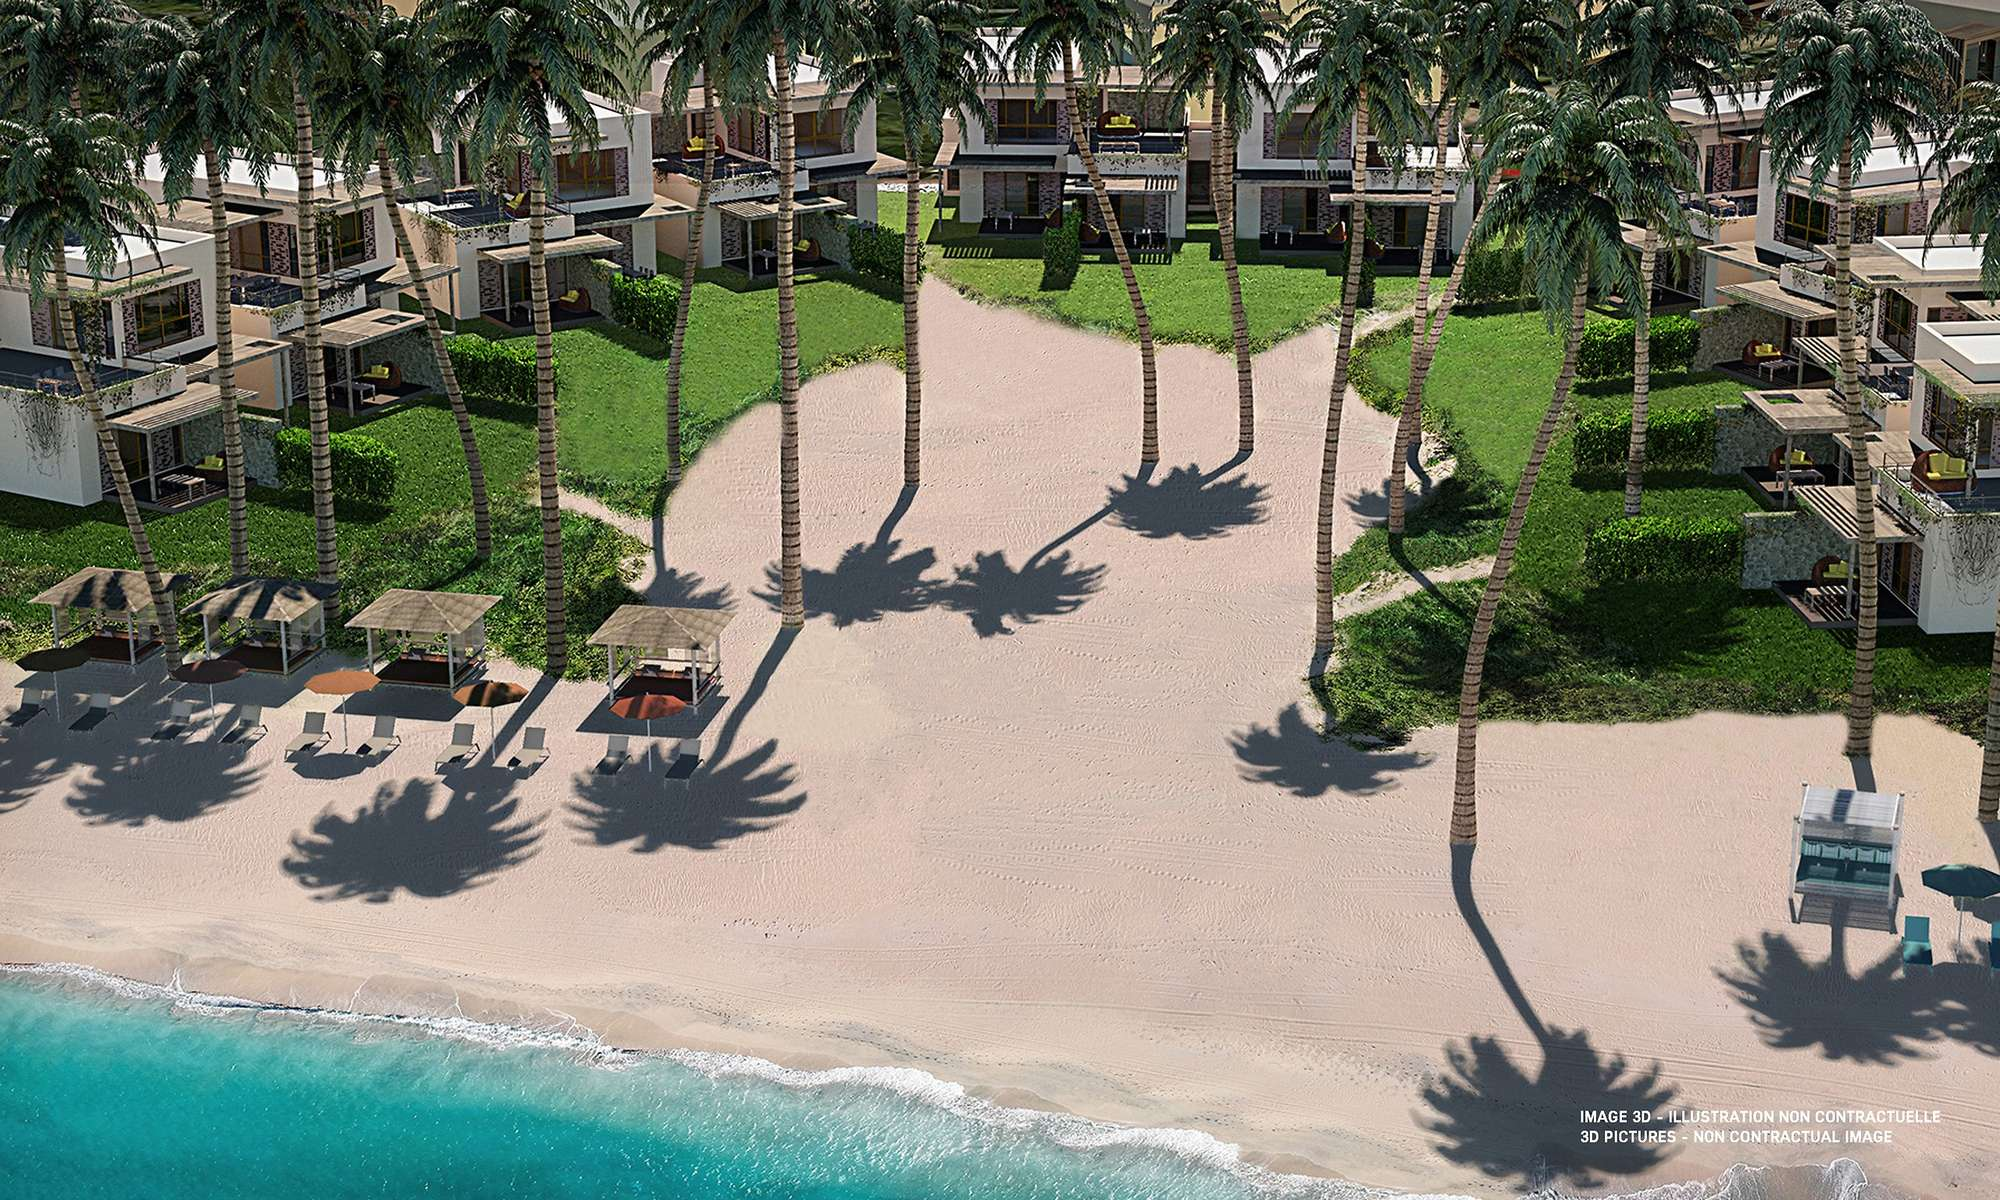 https___ns.clubmed.com_dream_EXCLUSIVE_COLLECTION_Resorts_Miches_Playa_Esmeralda_195443-cc1o95v2aj-swhr